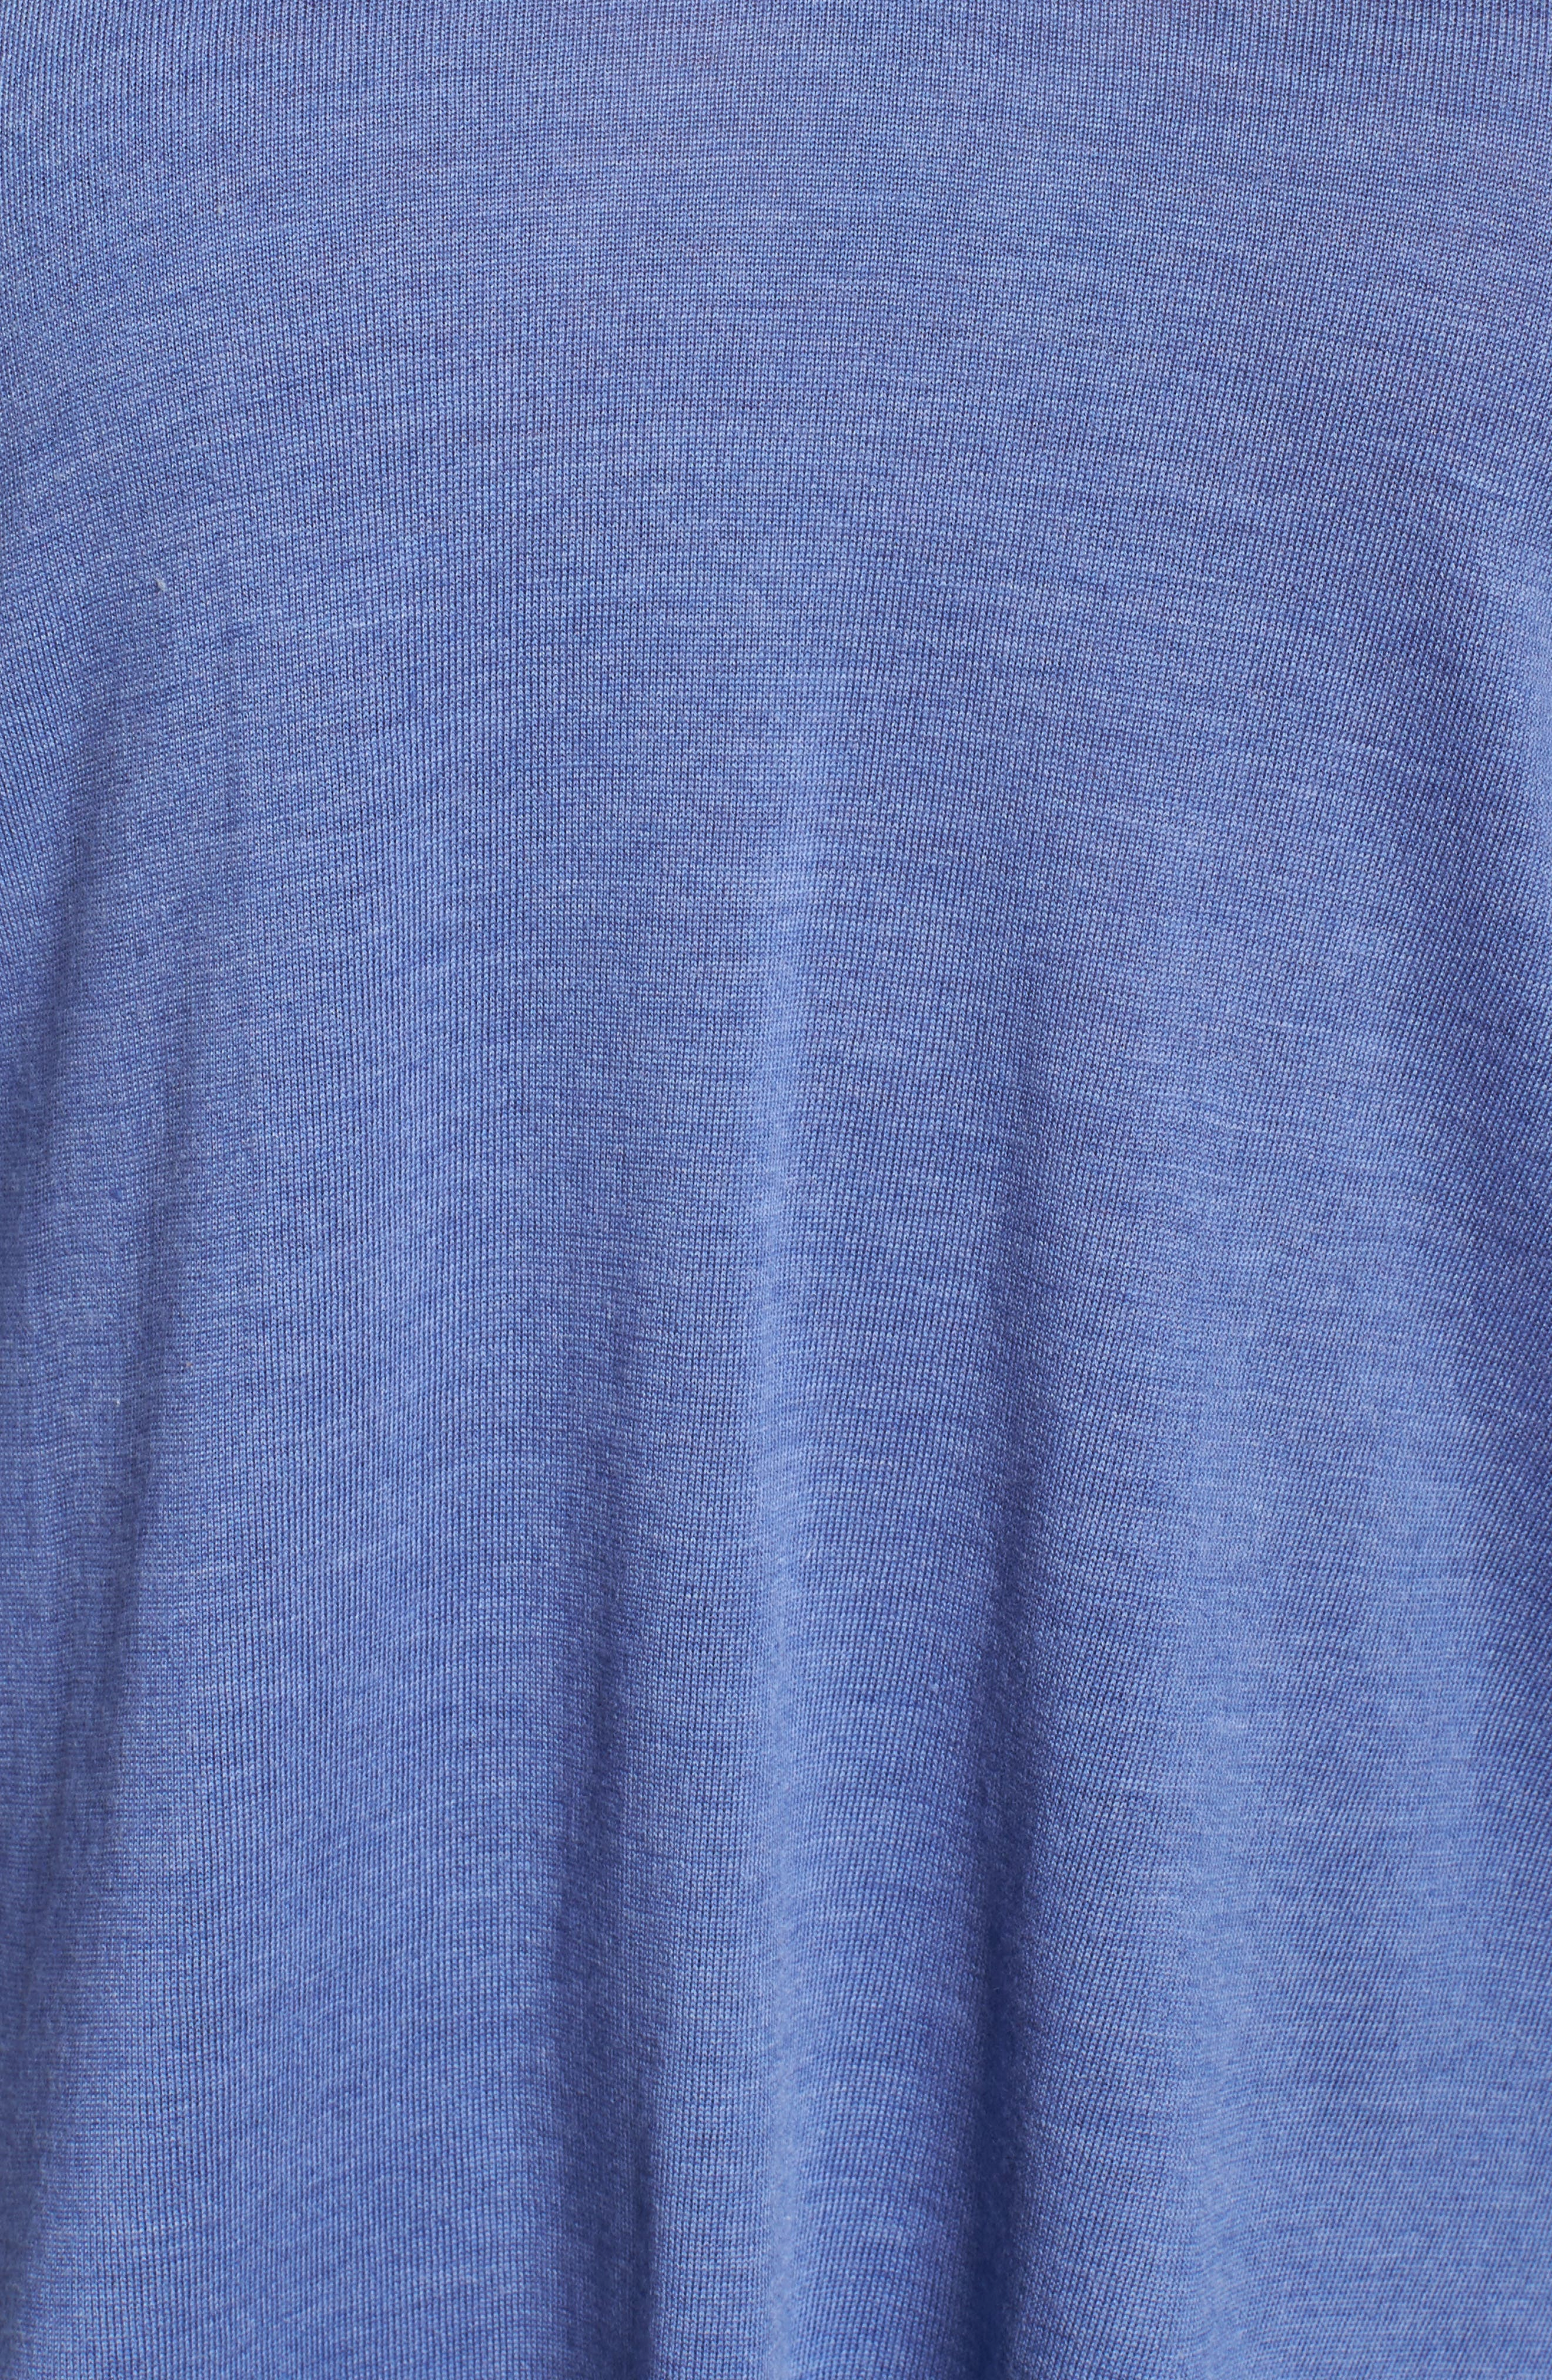 Merino Wool Tunic Sweater,                             Alternate thumbnail 23, color,